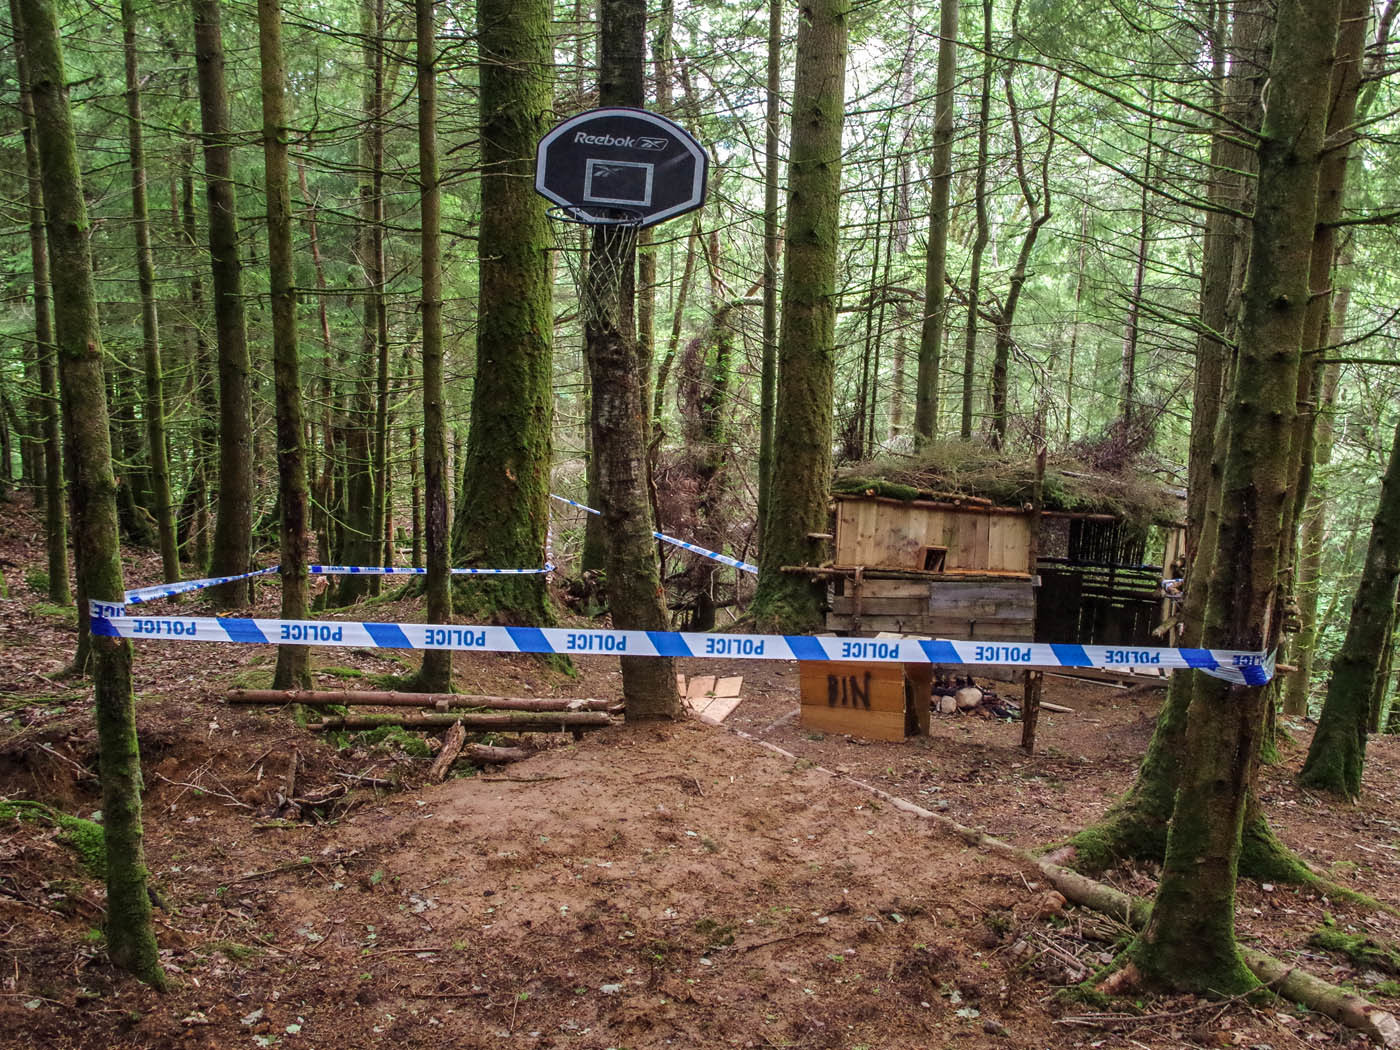 A local farmer was shocked to find a hut and mountain bike track created within Cowden Woods, Comrie. Police are now investigating but some locals want to see it saved.